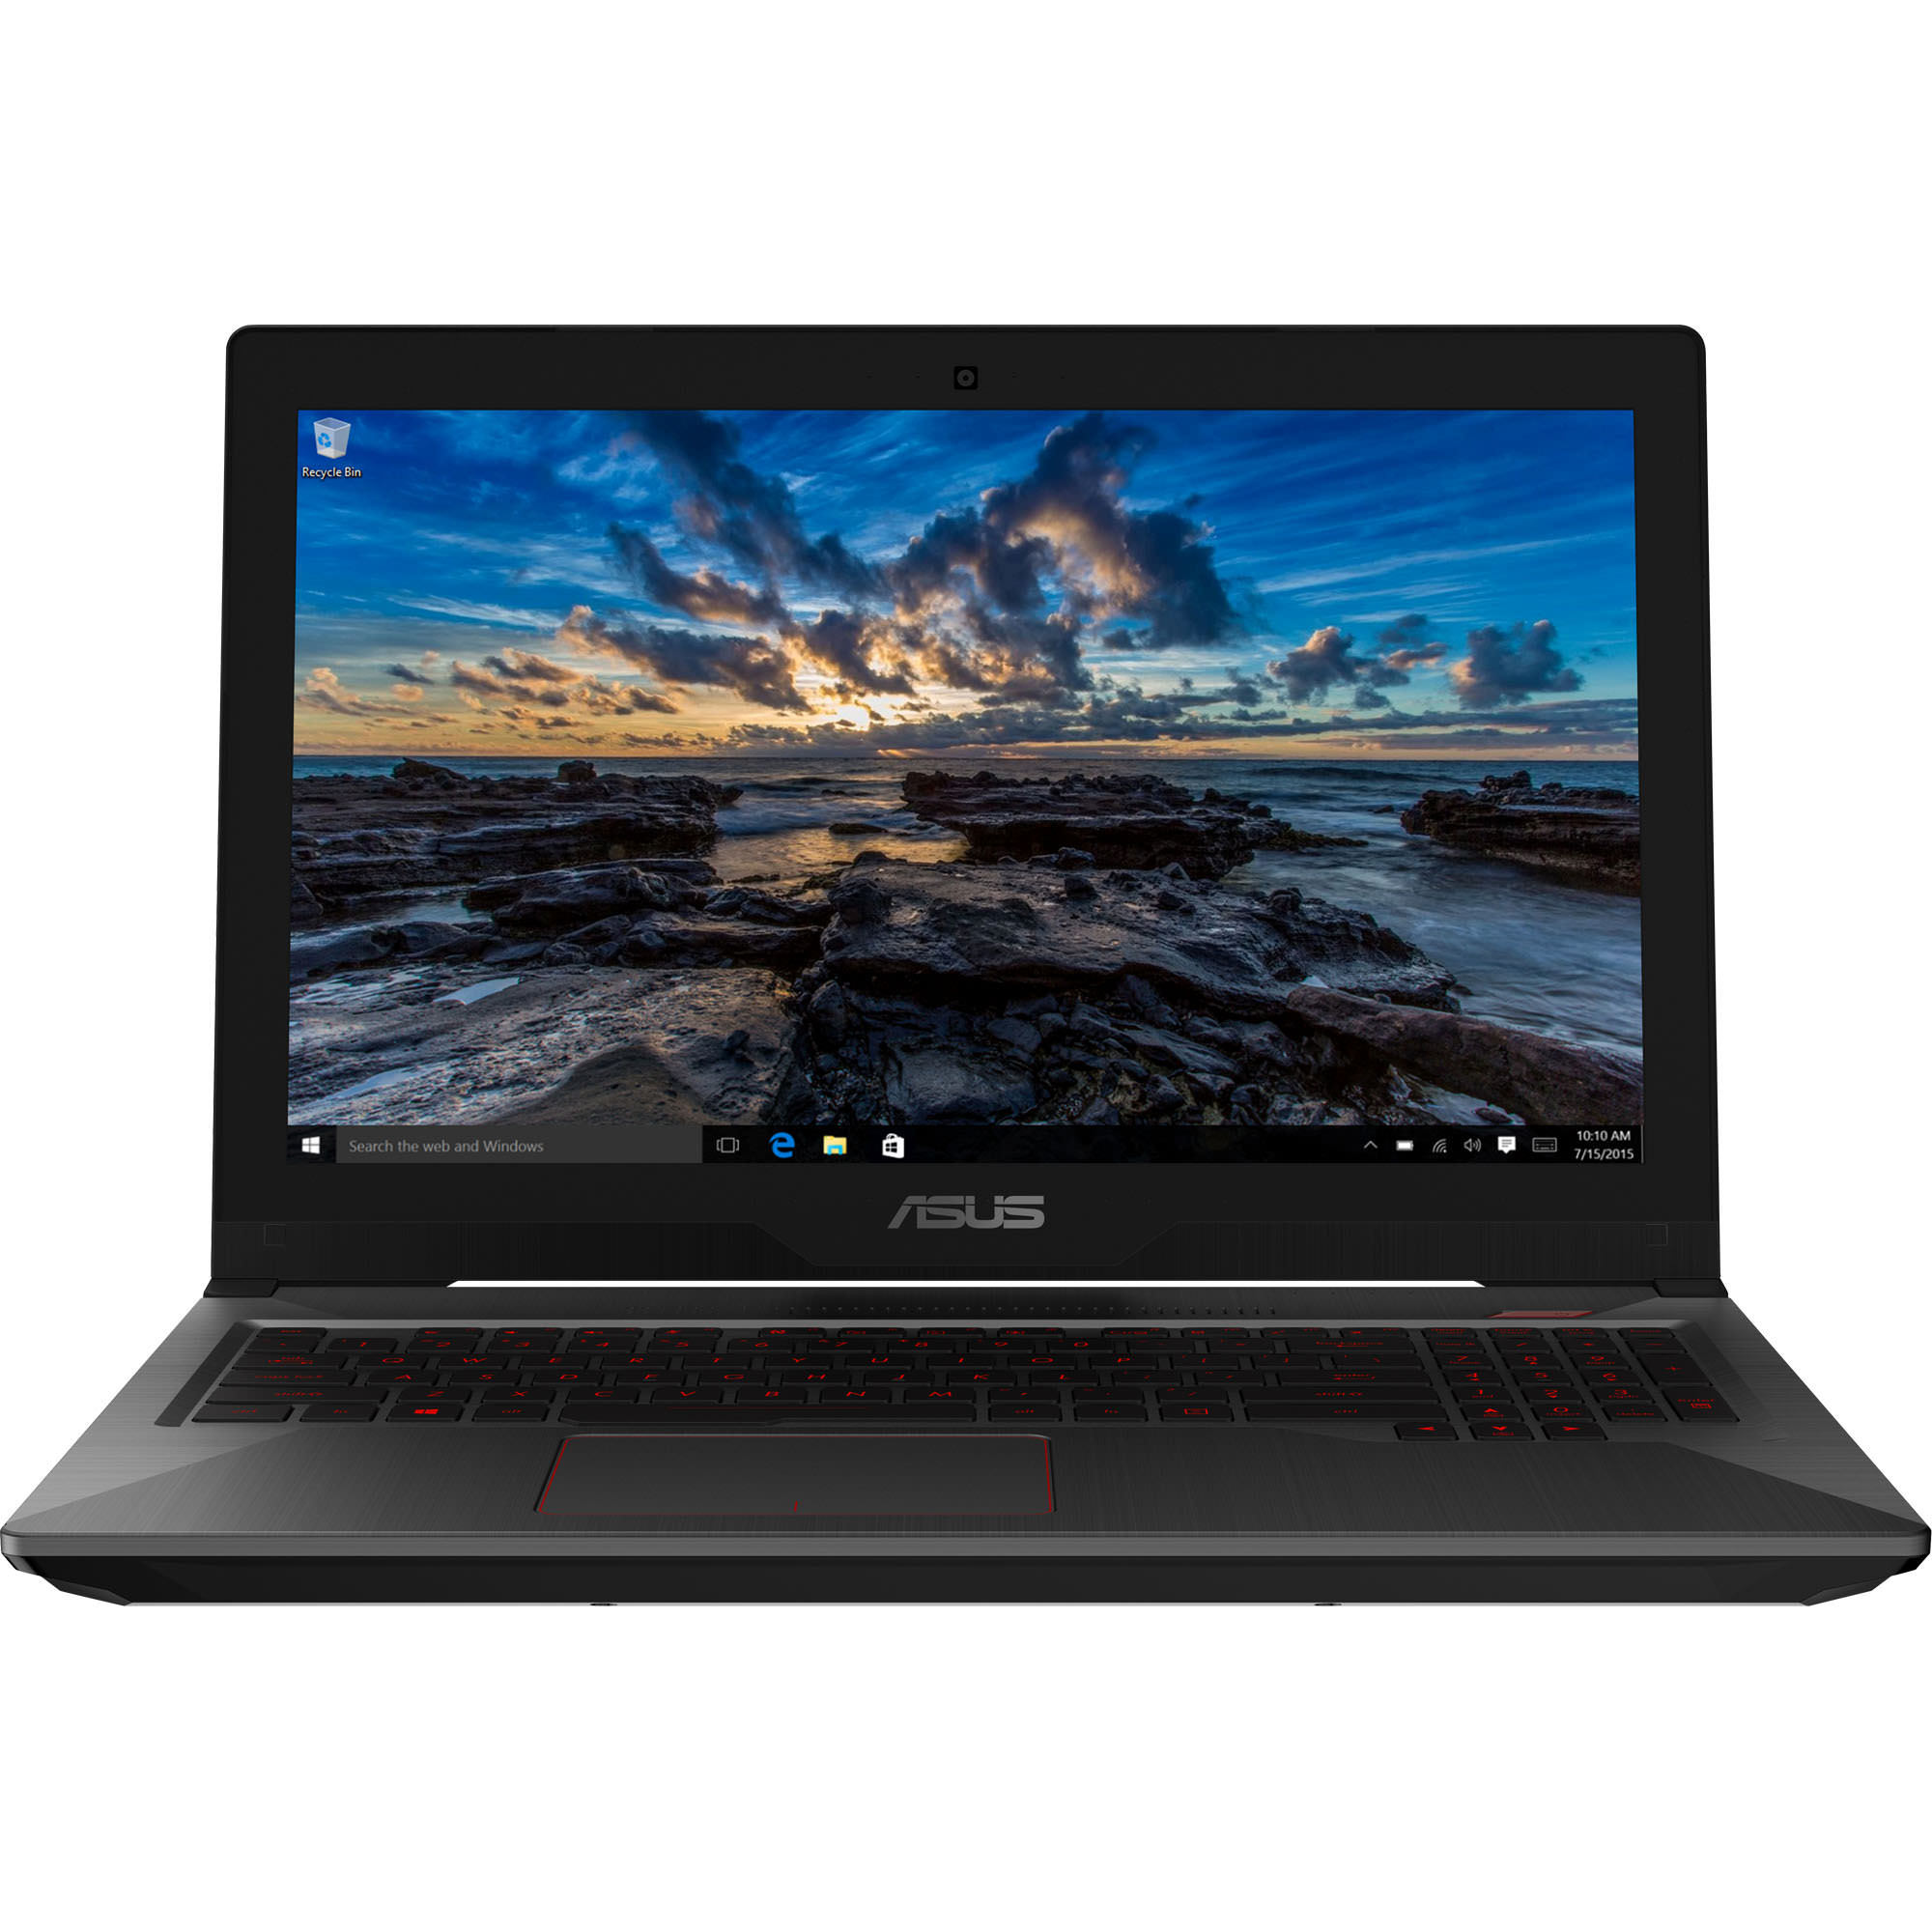 "ASUS FX503VD 15.6"" FHD Powerful Gaming Laptop, Intel Core i5 2.5GHz, GTX 1050, 1TB SSHD, 8GB DDR4, Windows 10 Home"